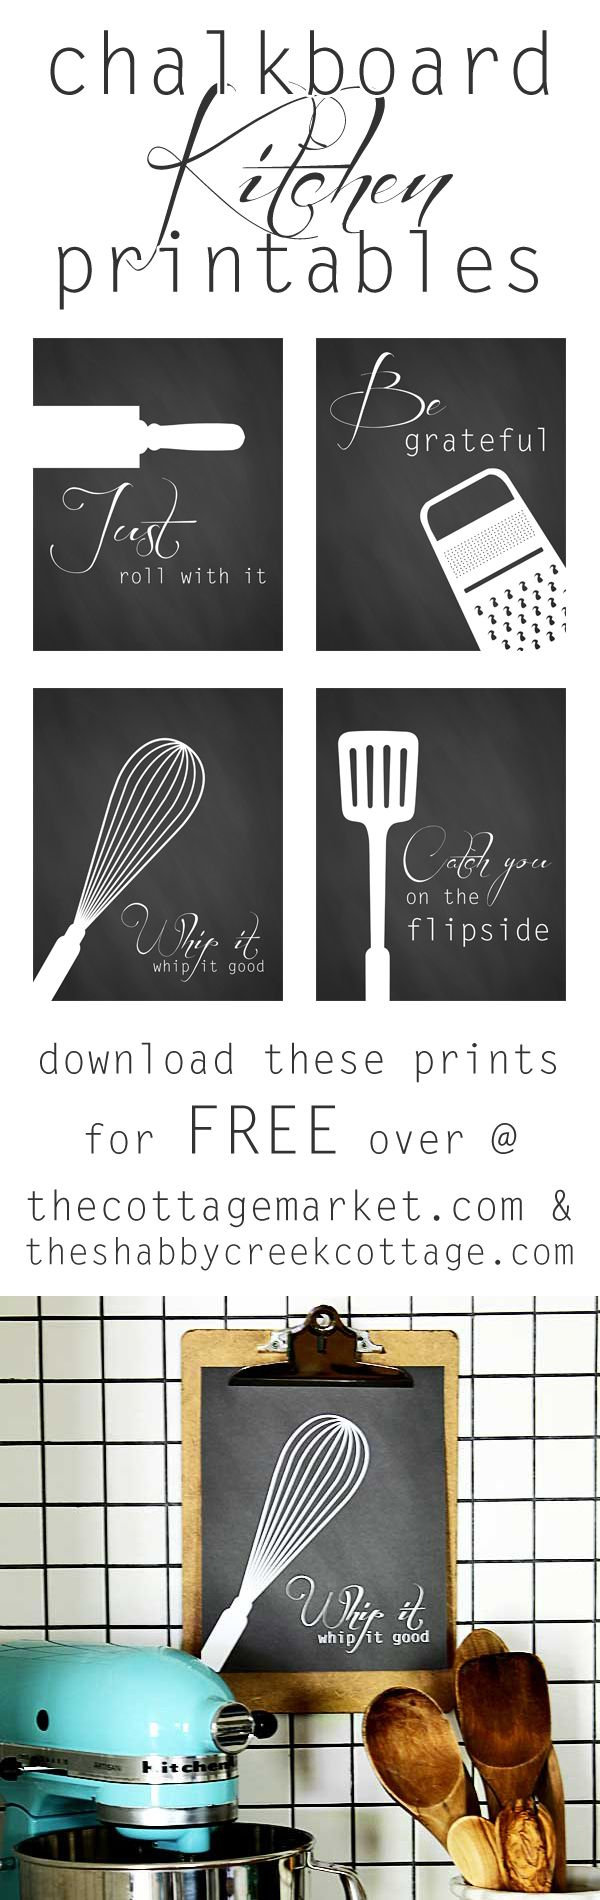 Free Kitchen Art Printables - The Cottage Market #FreePrintables, #FreePrintable, #FreeKitchenPrintables, #FreeChalkboardPrintables, #FreeChalkboardKitchenArt